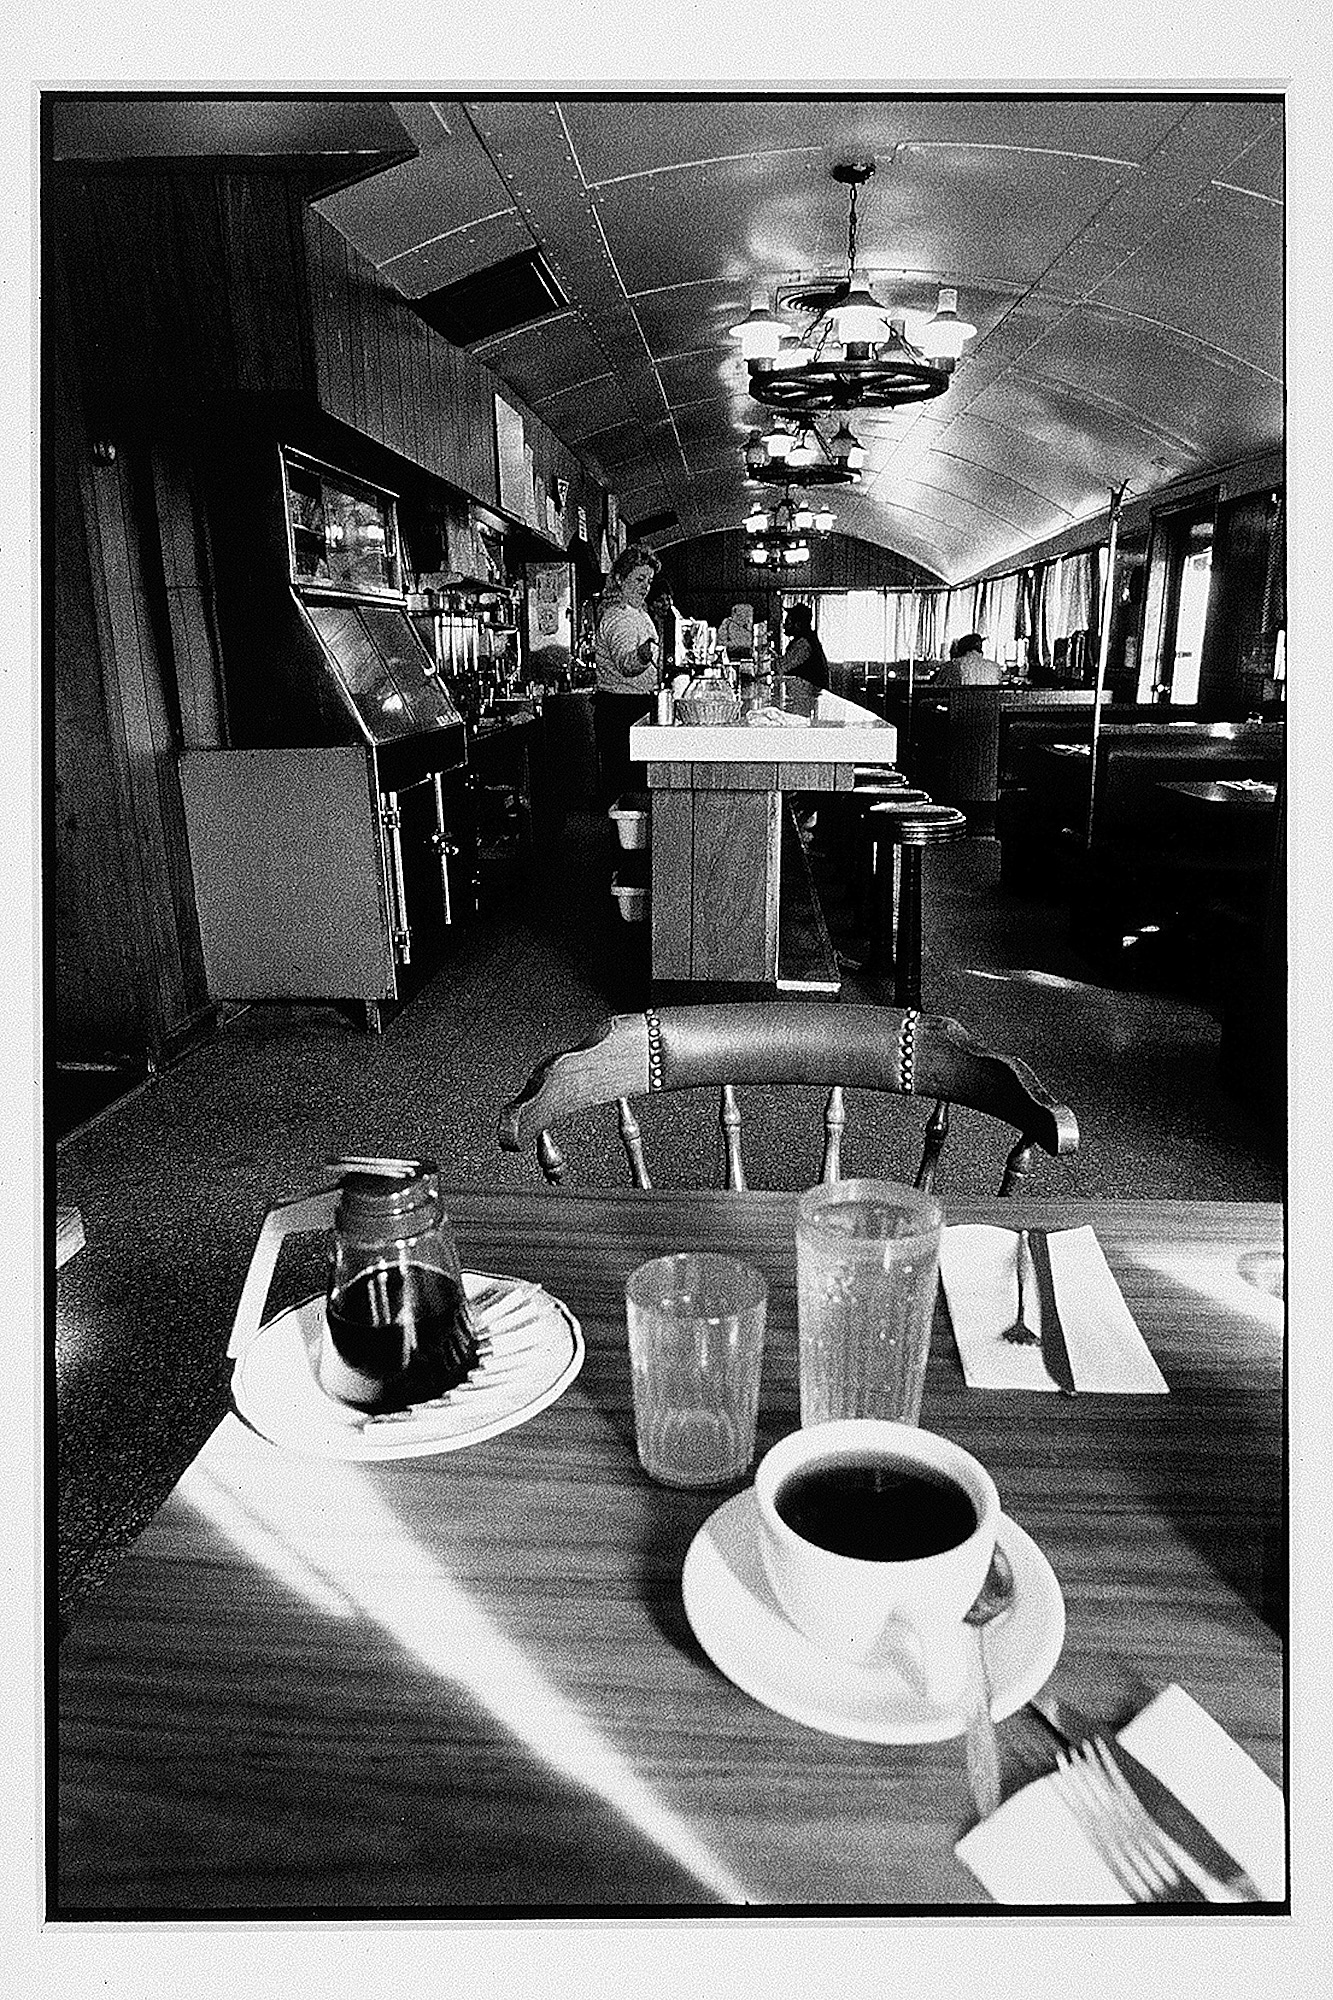 The Loraine Diner series. Personal project on the Loraine Diner, an old, stainless steel, boxcar-style diner that was razed to make way for a McDonalds.